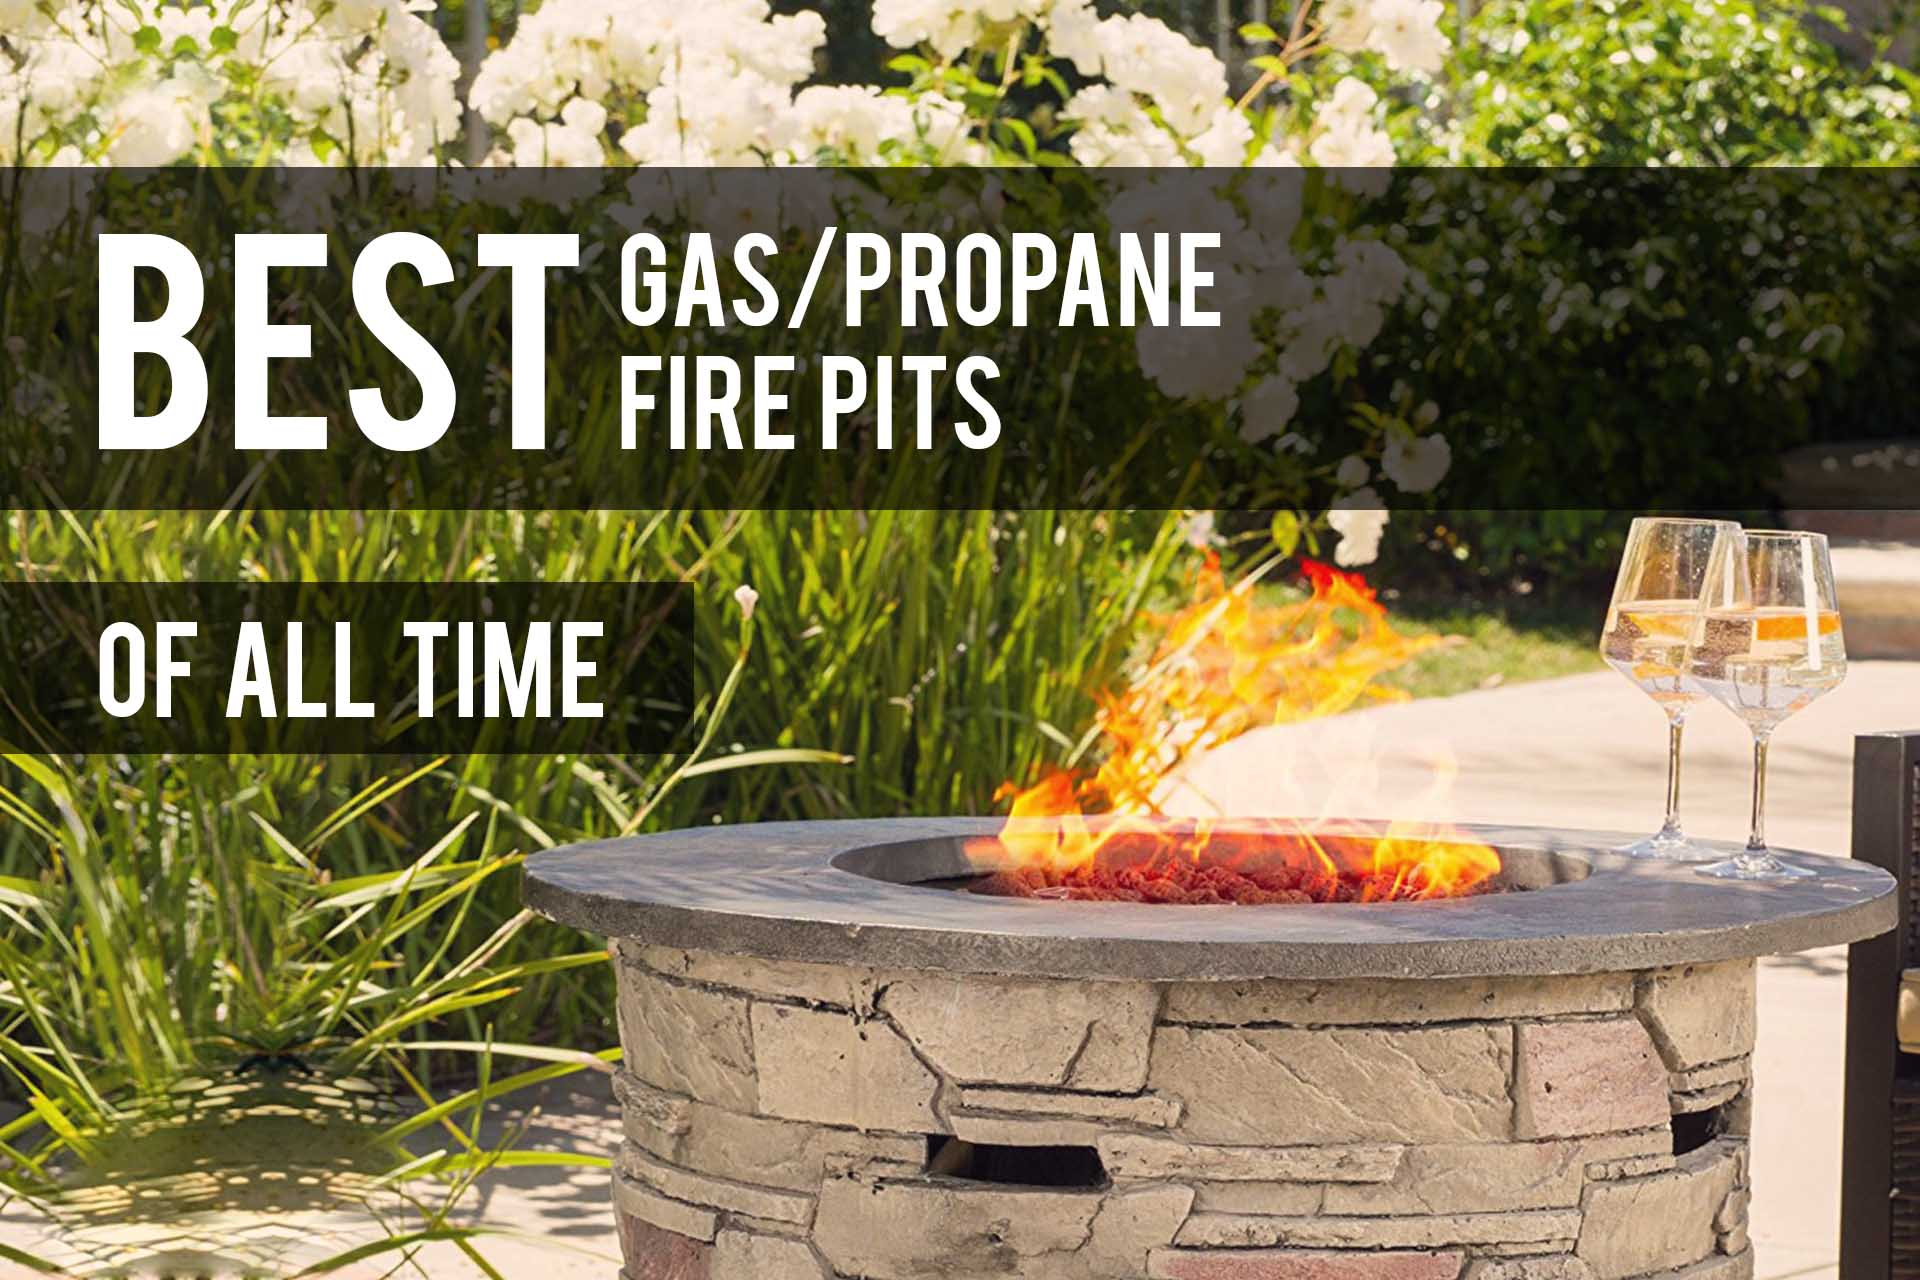 Best Propane Fire Pits 2020 Reviews Gas Amp Propane The